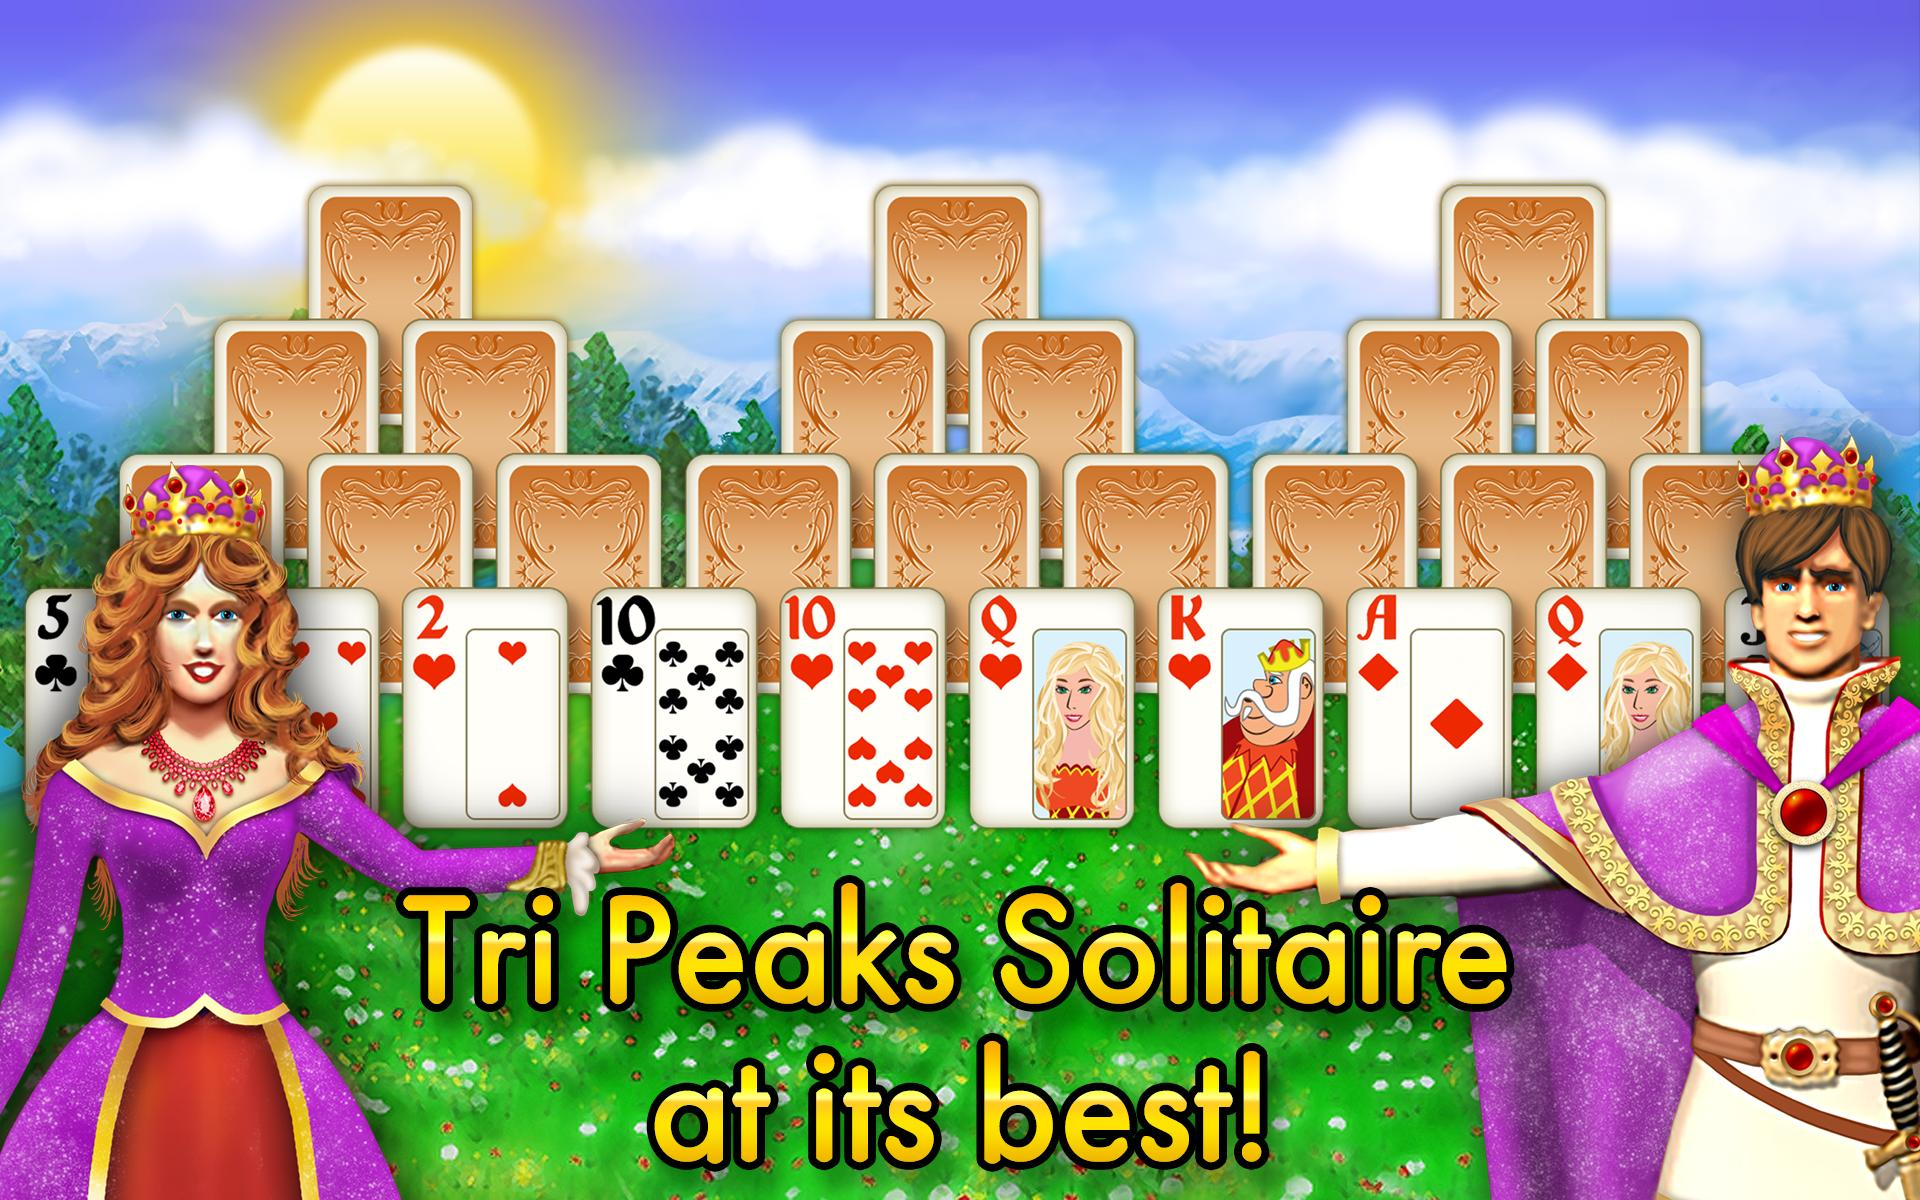 Magic Towers Solitaire Tri Peaks 1.53.21-g Screenshot 11